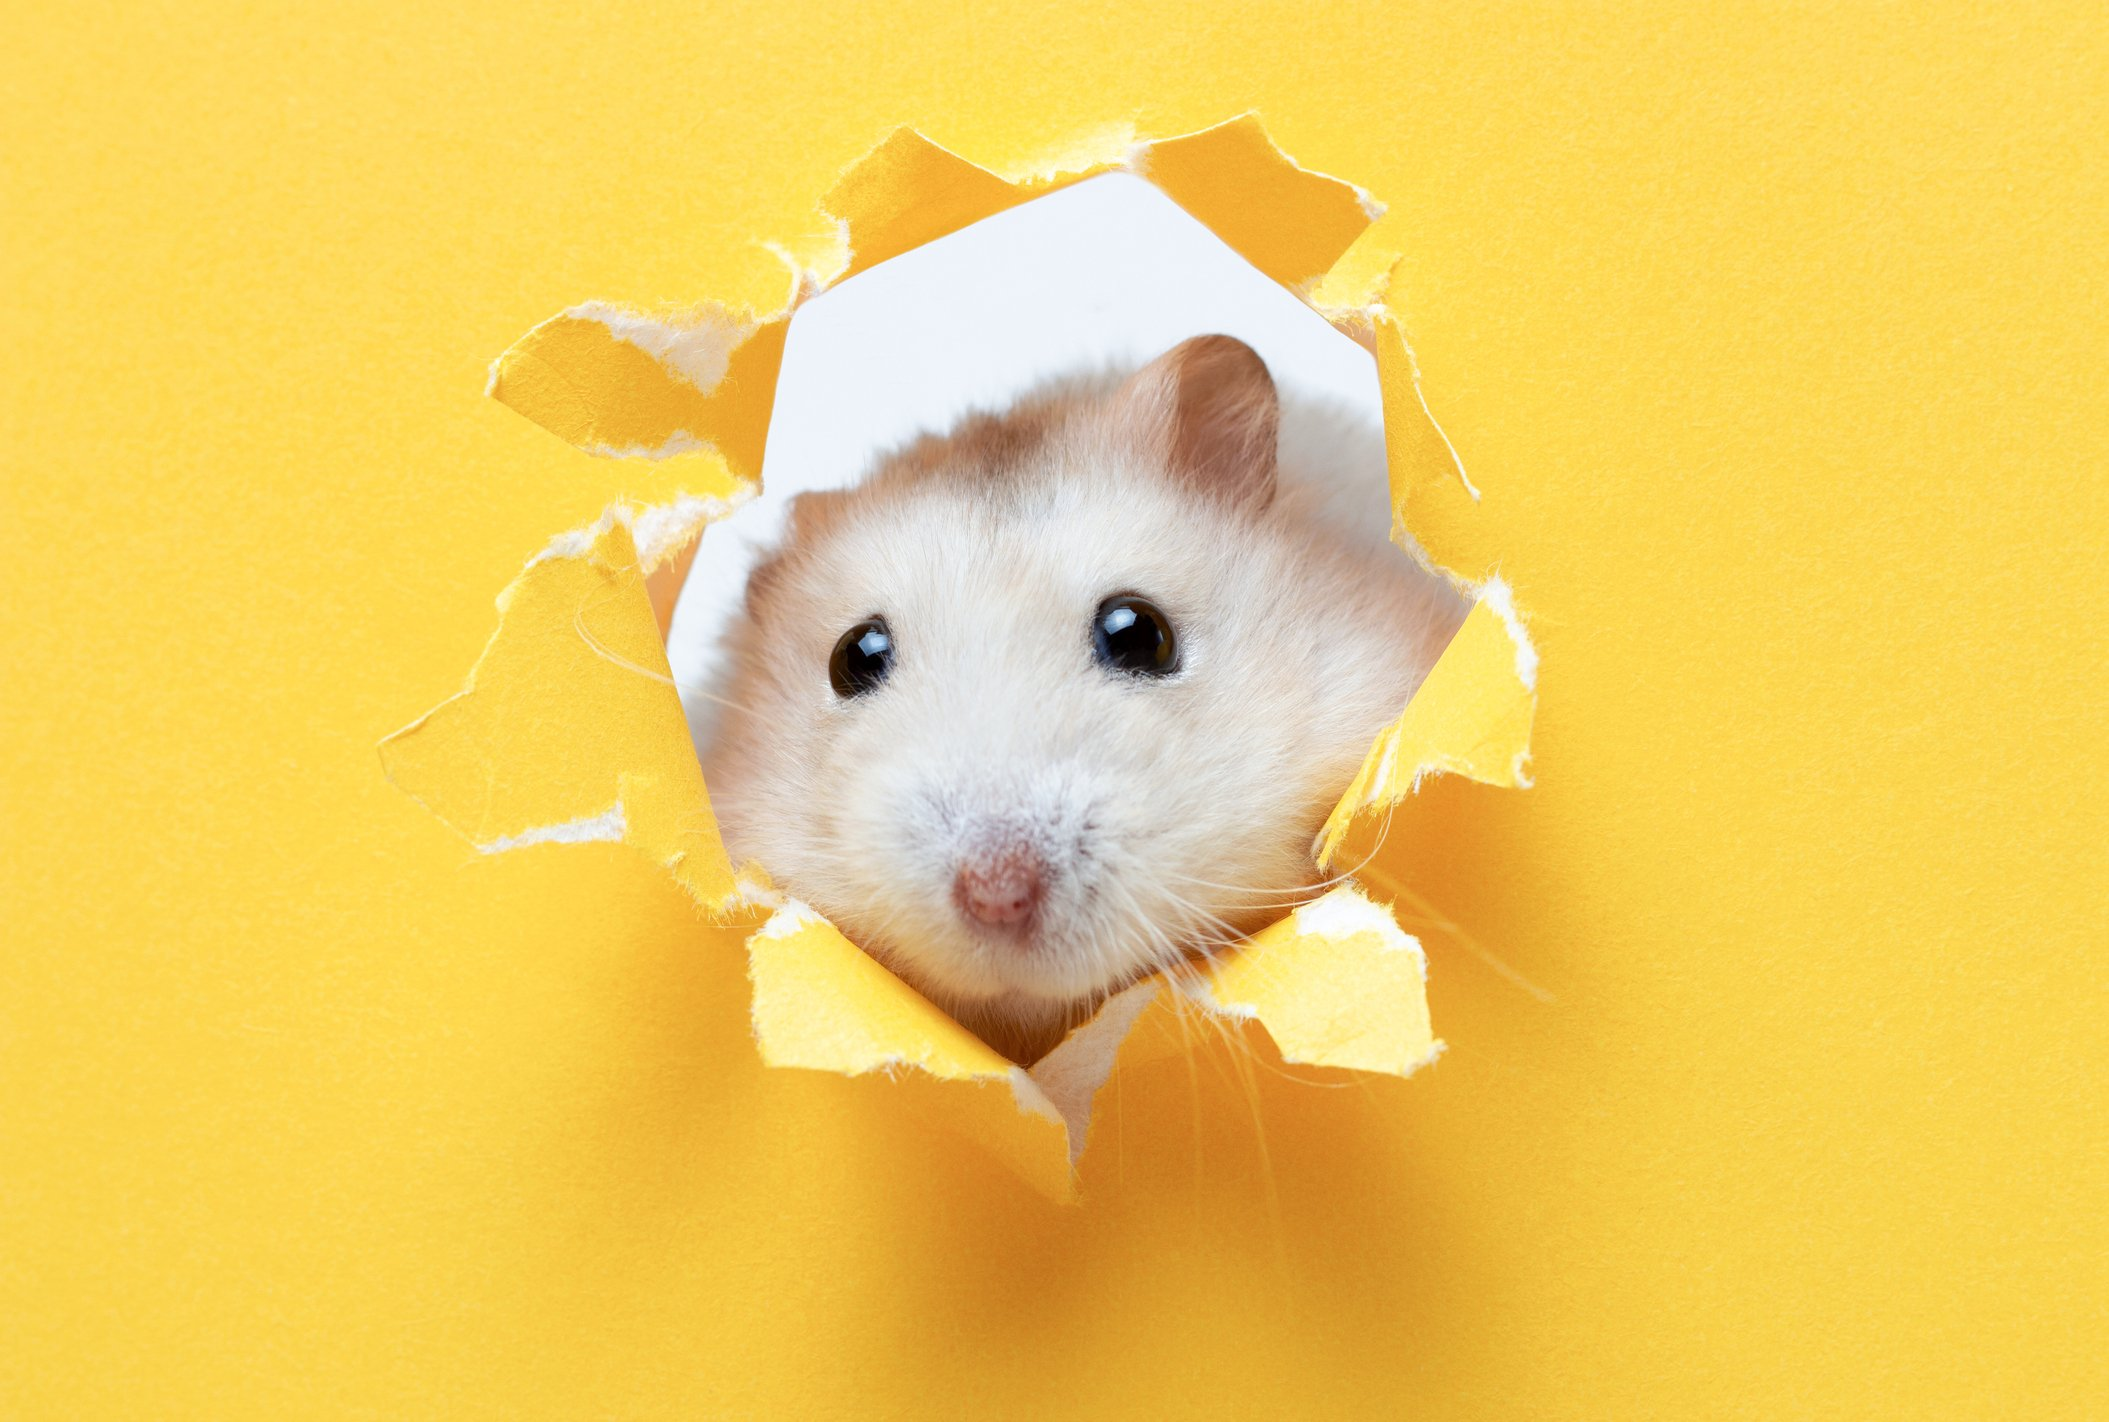 A small fluffy hamster looks through yellow ragged paper, copy of the space